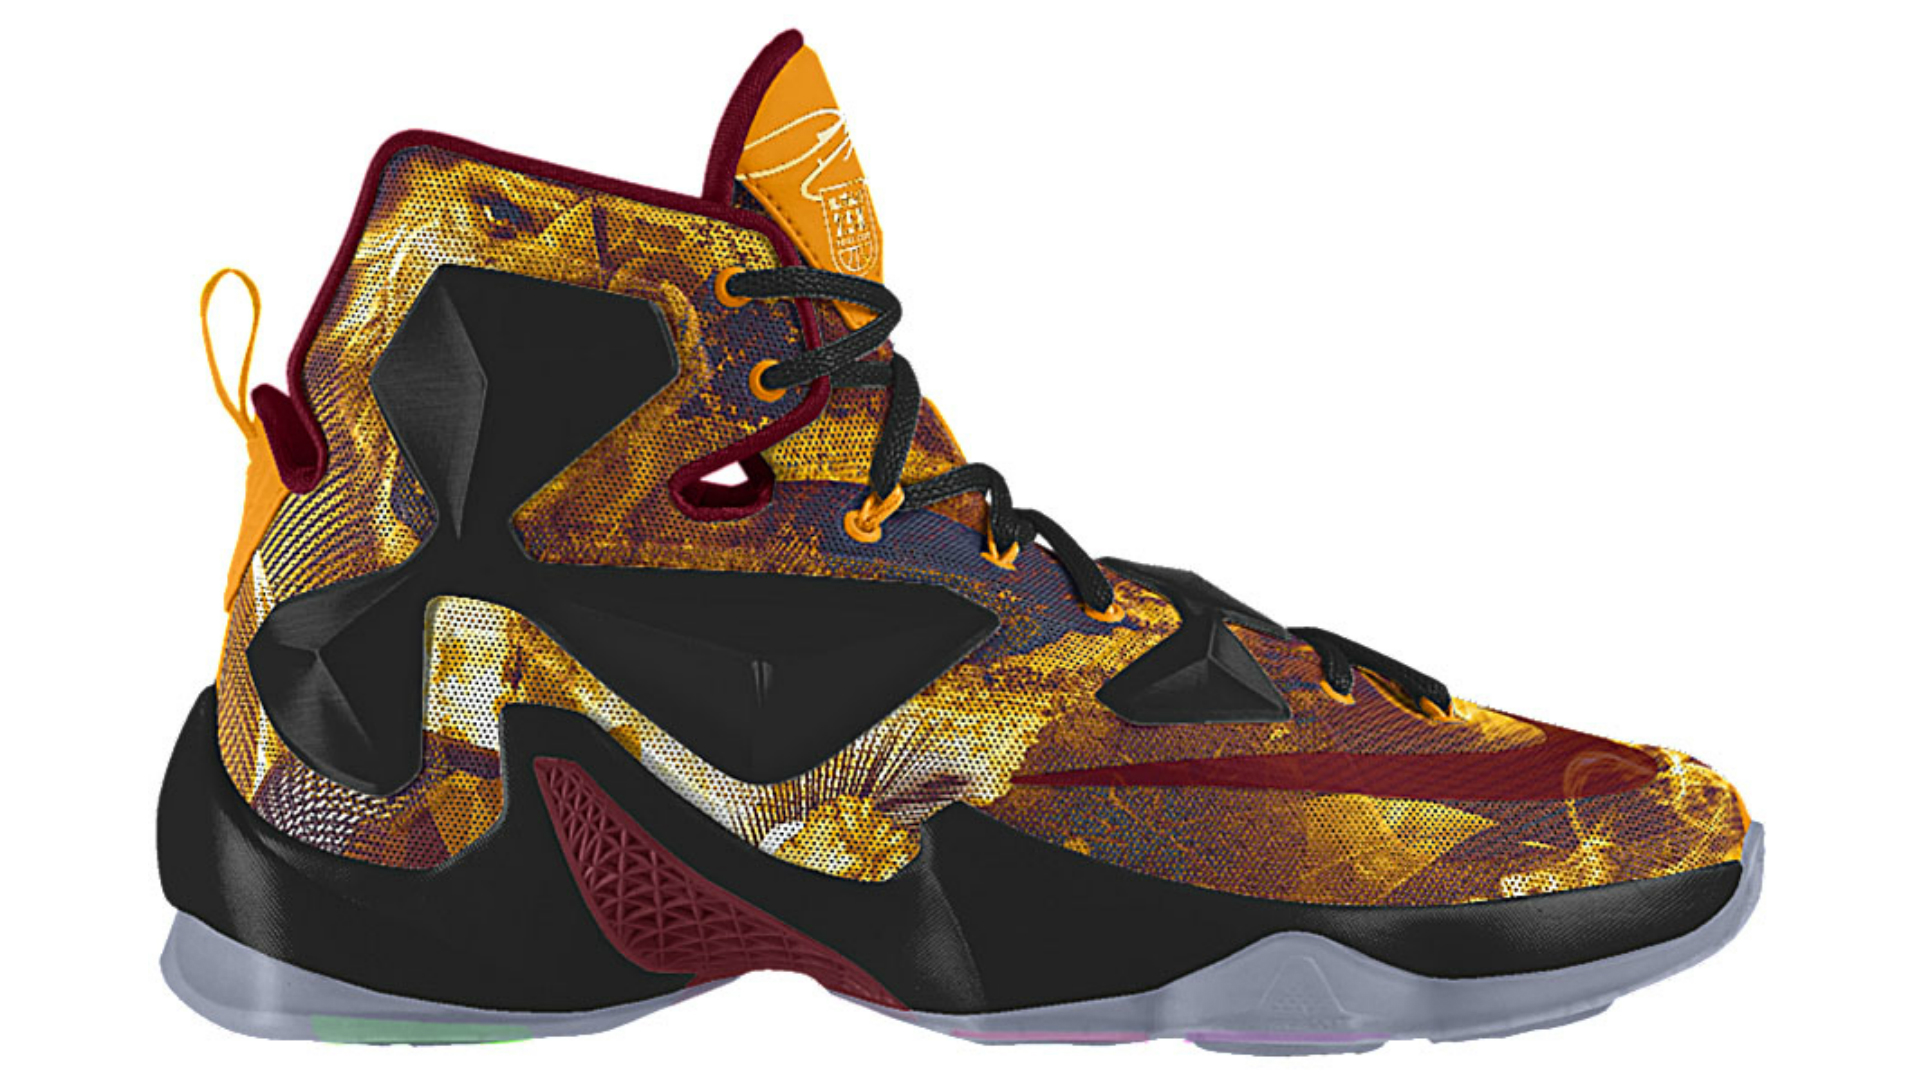 9839ca482e8c5 LeBron James gets a limited-edition shoe for his 25